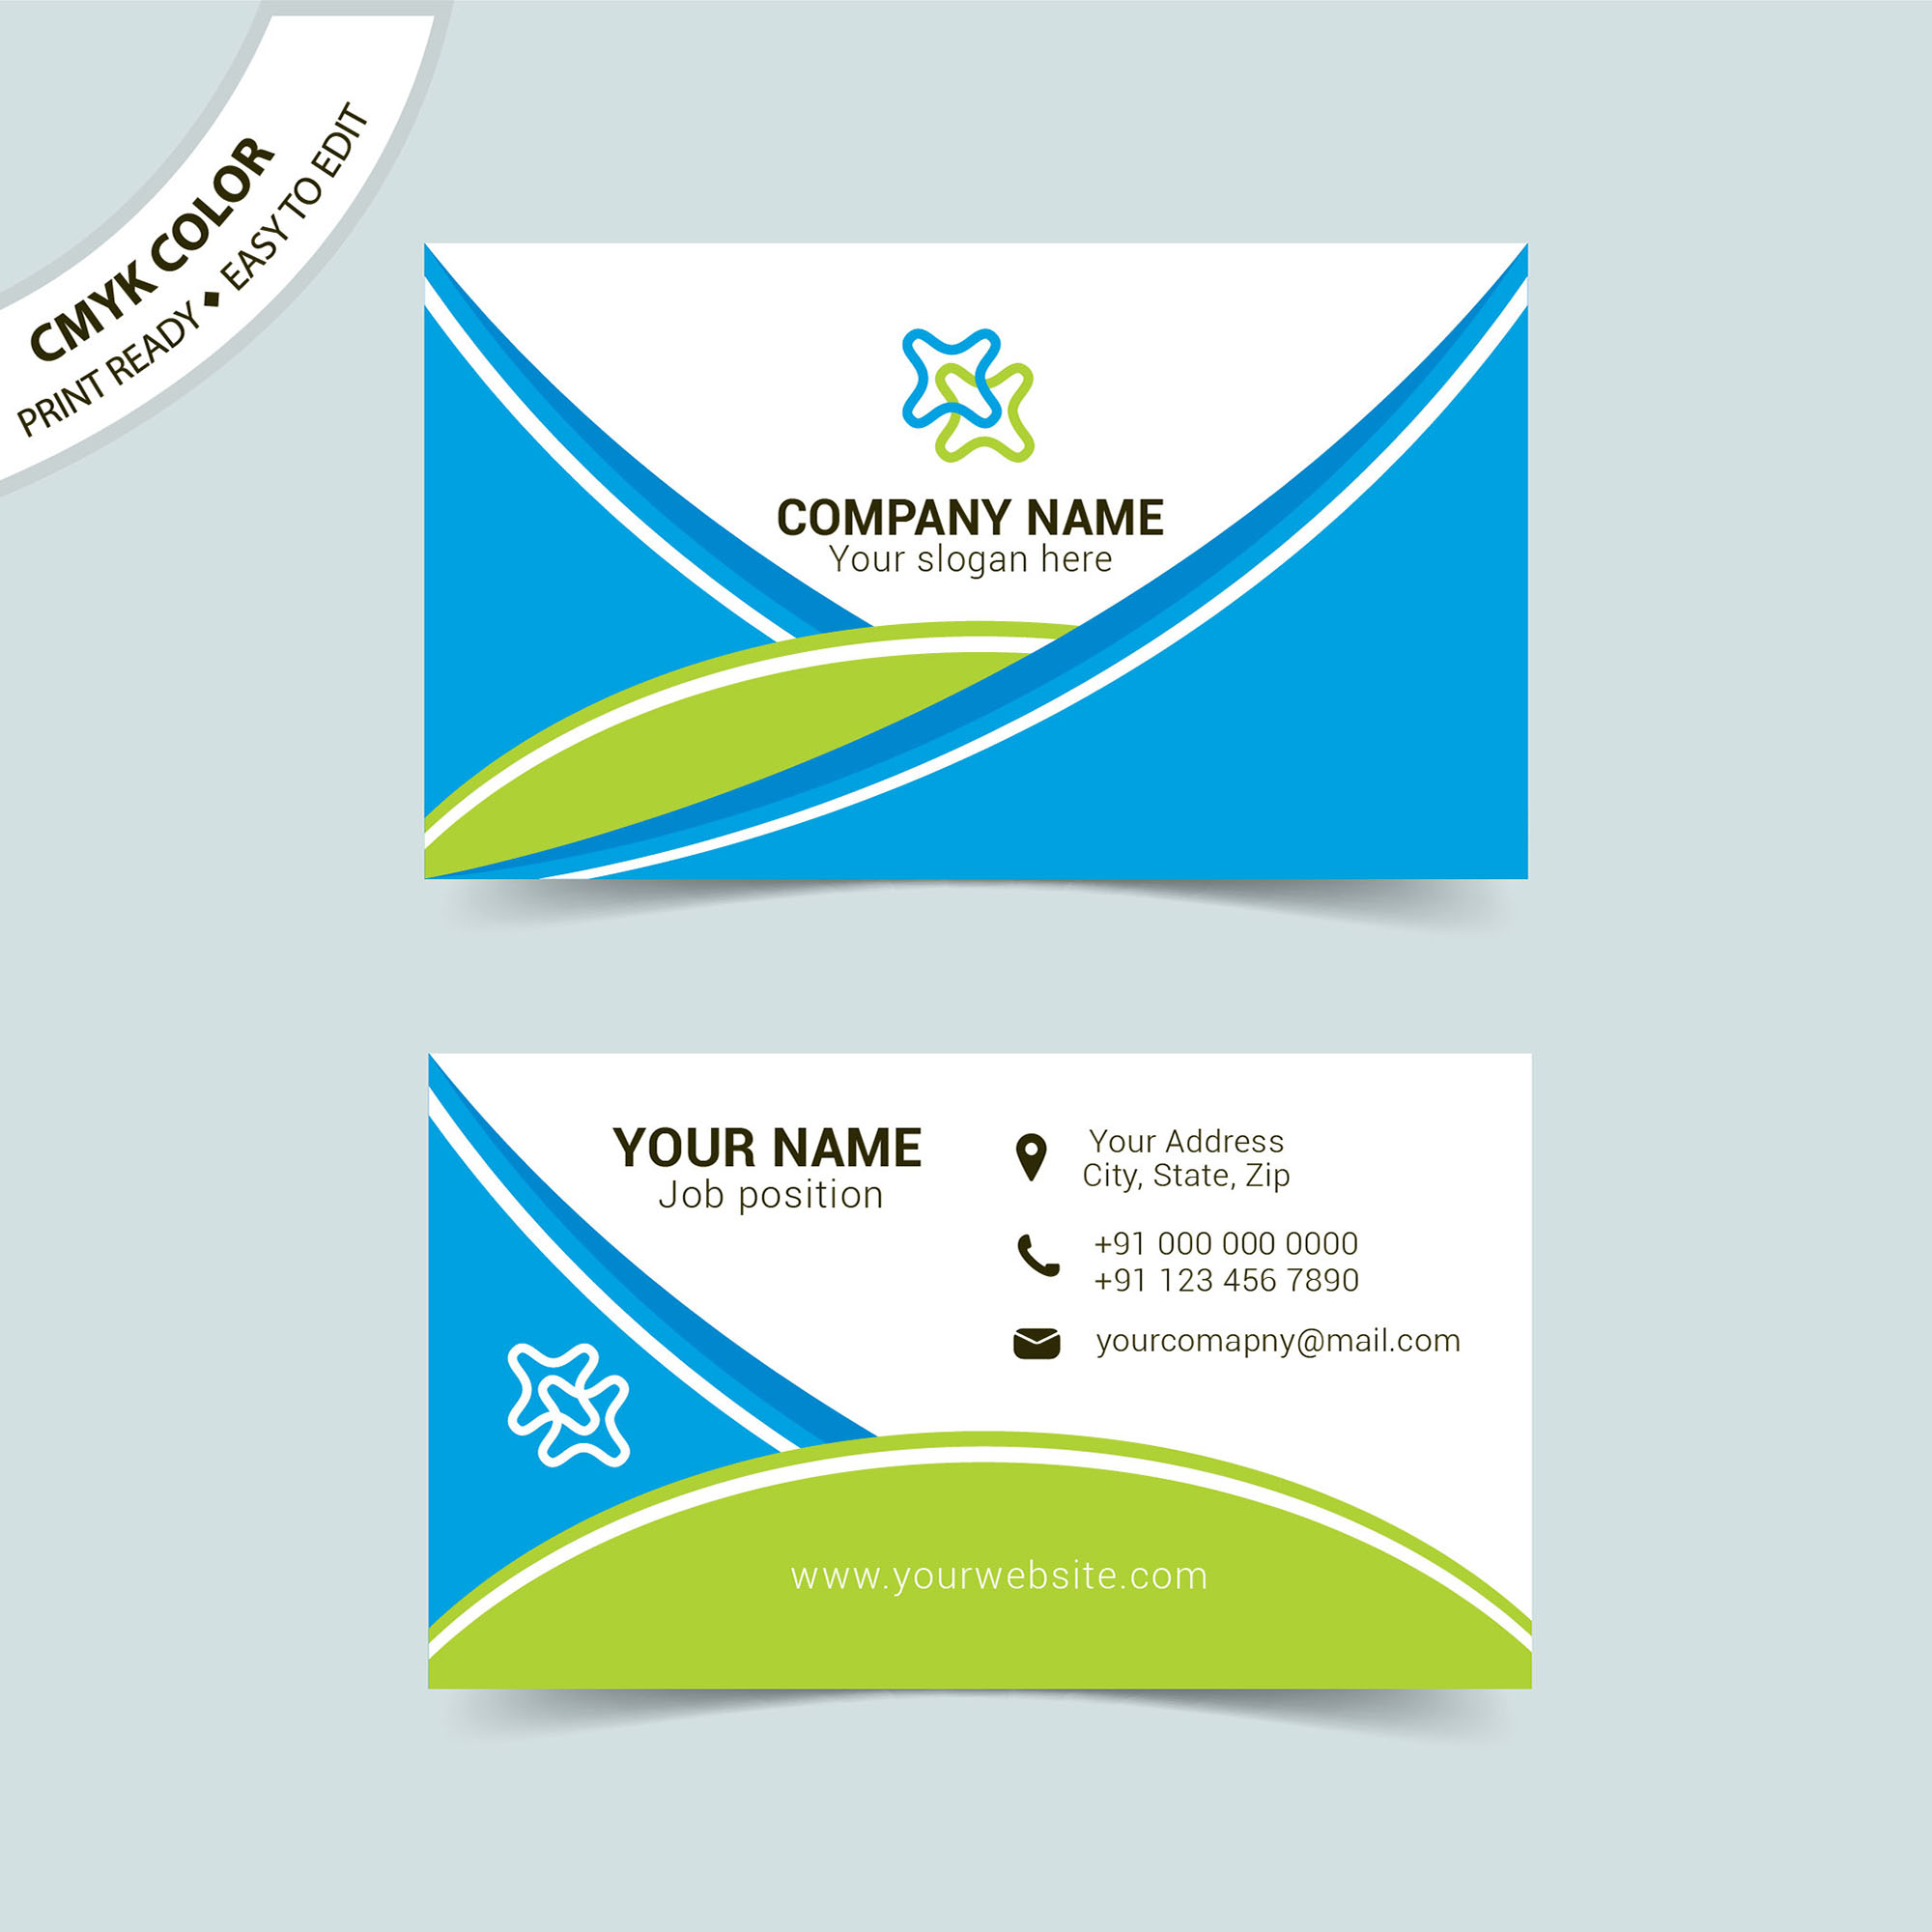 Creative Business Card Vector Template Free Download - Wisxi.com